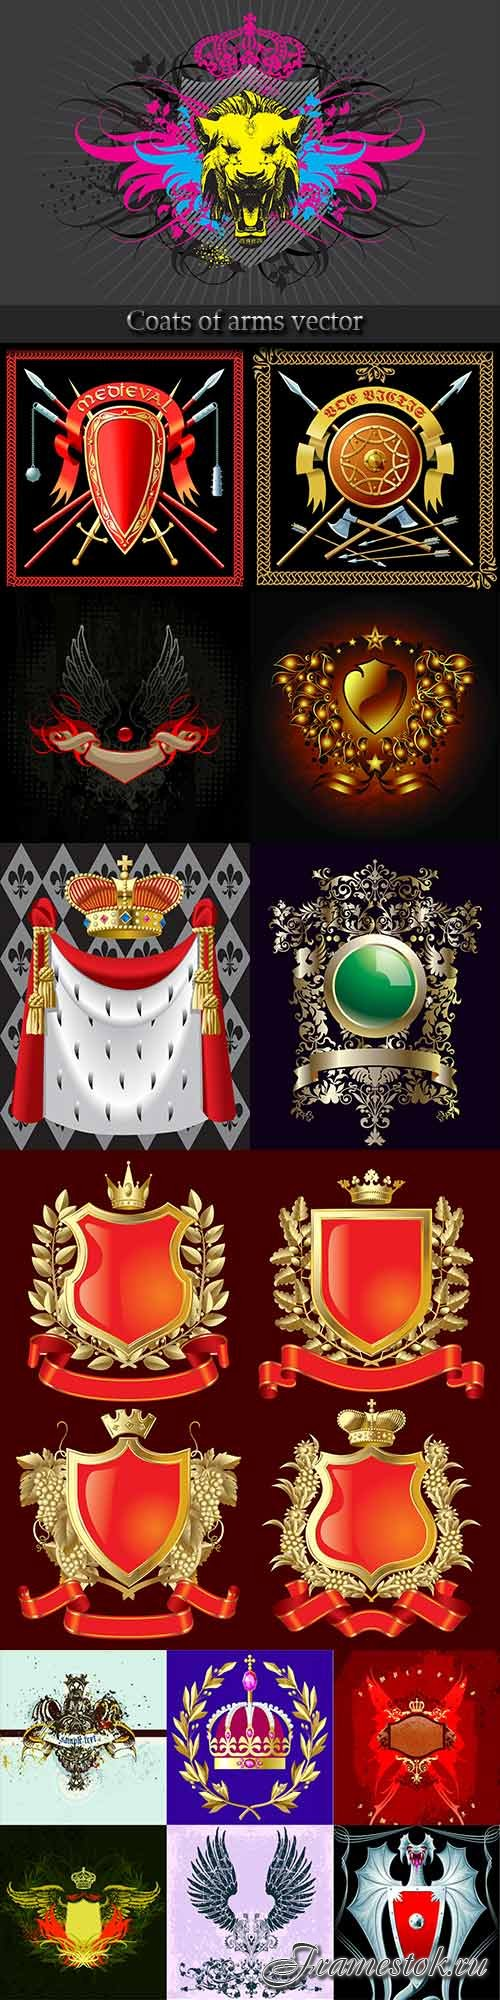 Coats of arms vector